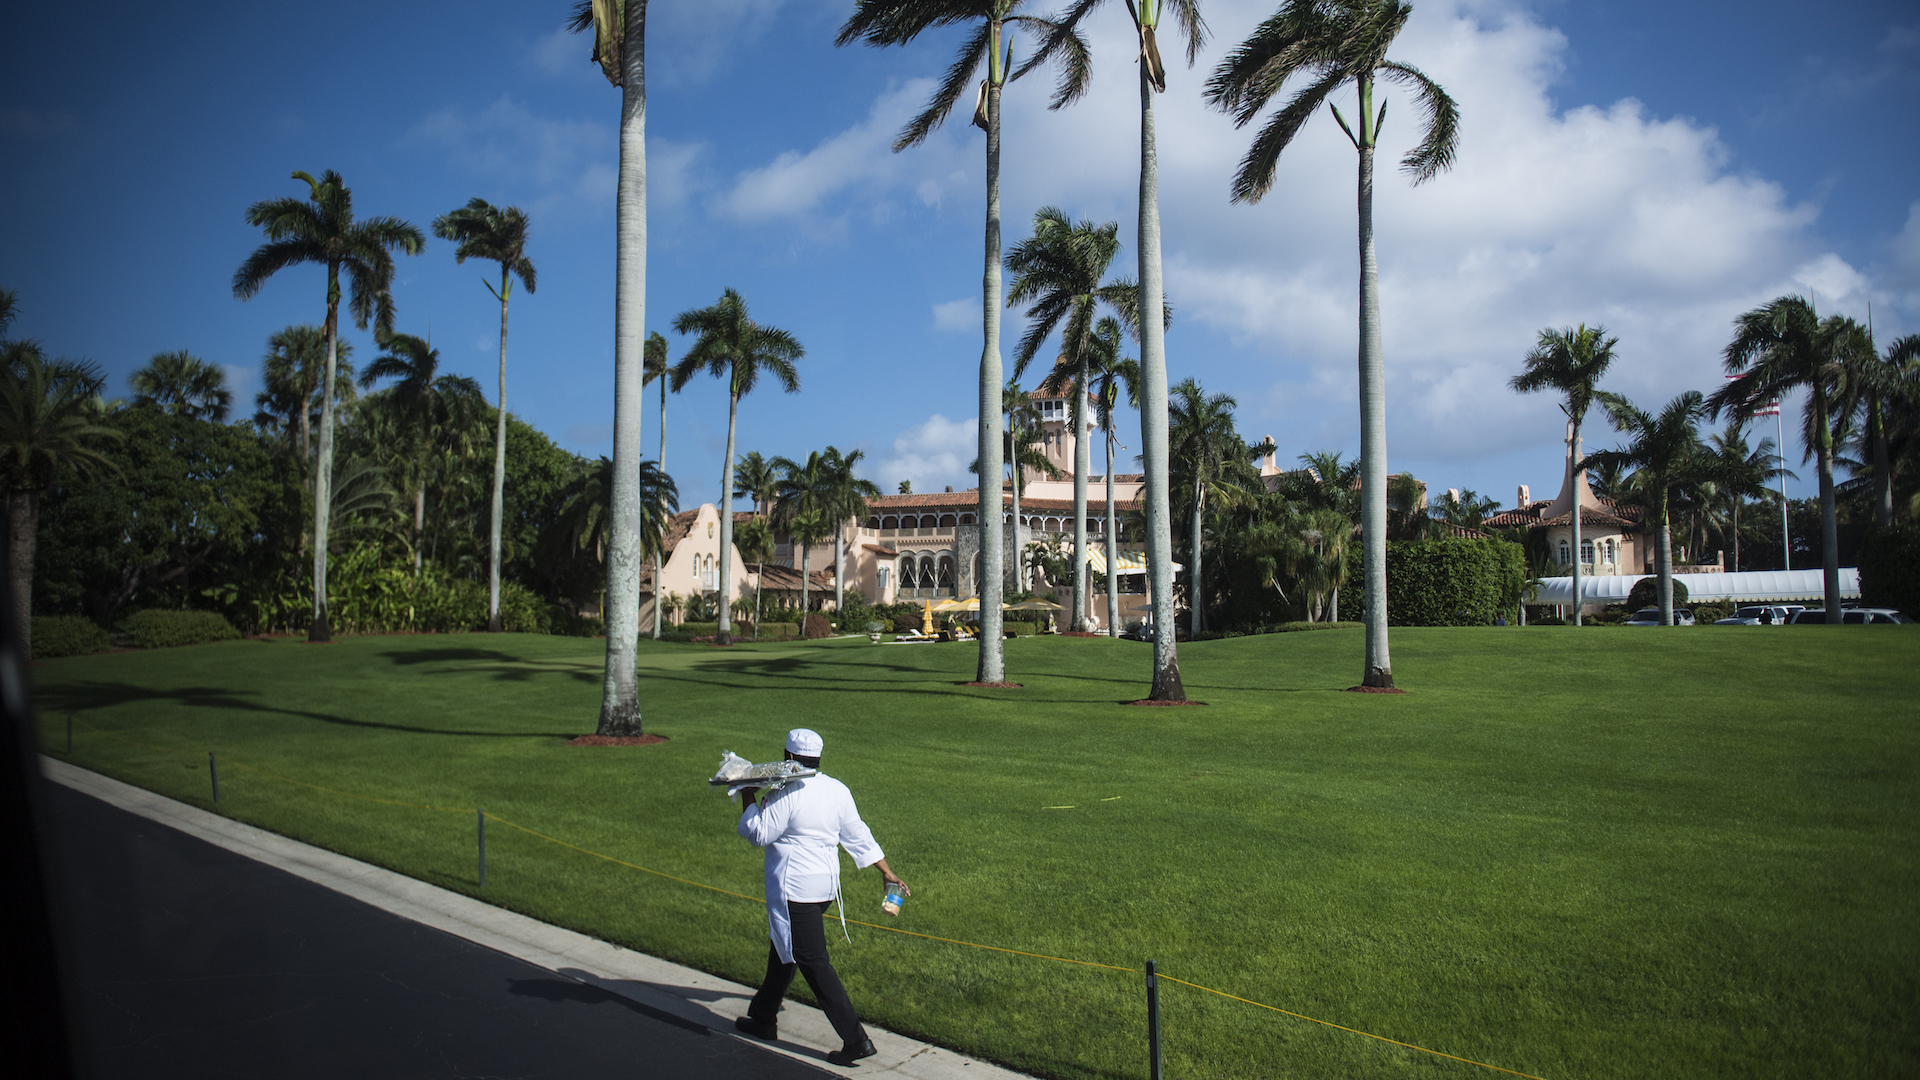 'Apply by fax': Before it can hire foreign workers, Trump's Mar-a-Lago Club advertises at home — briefly